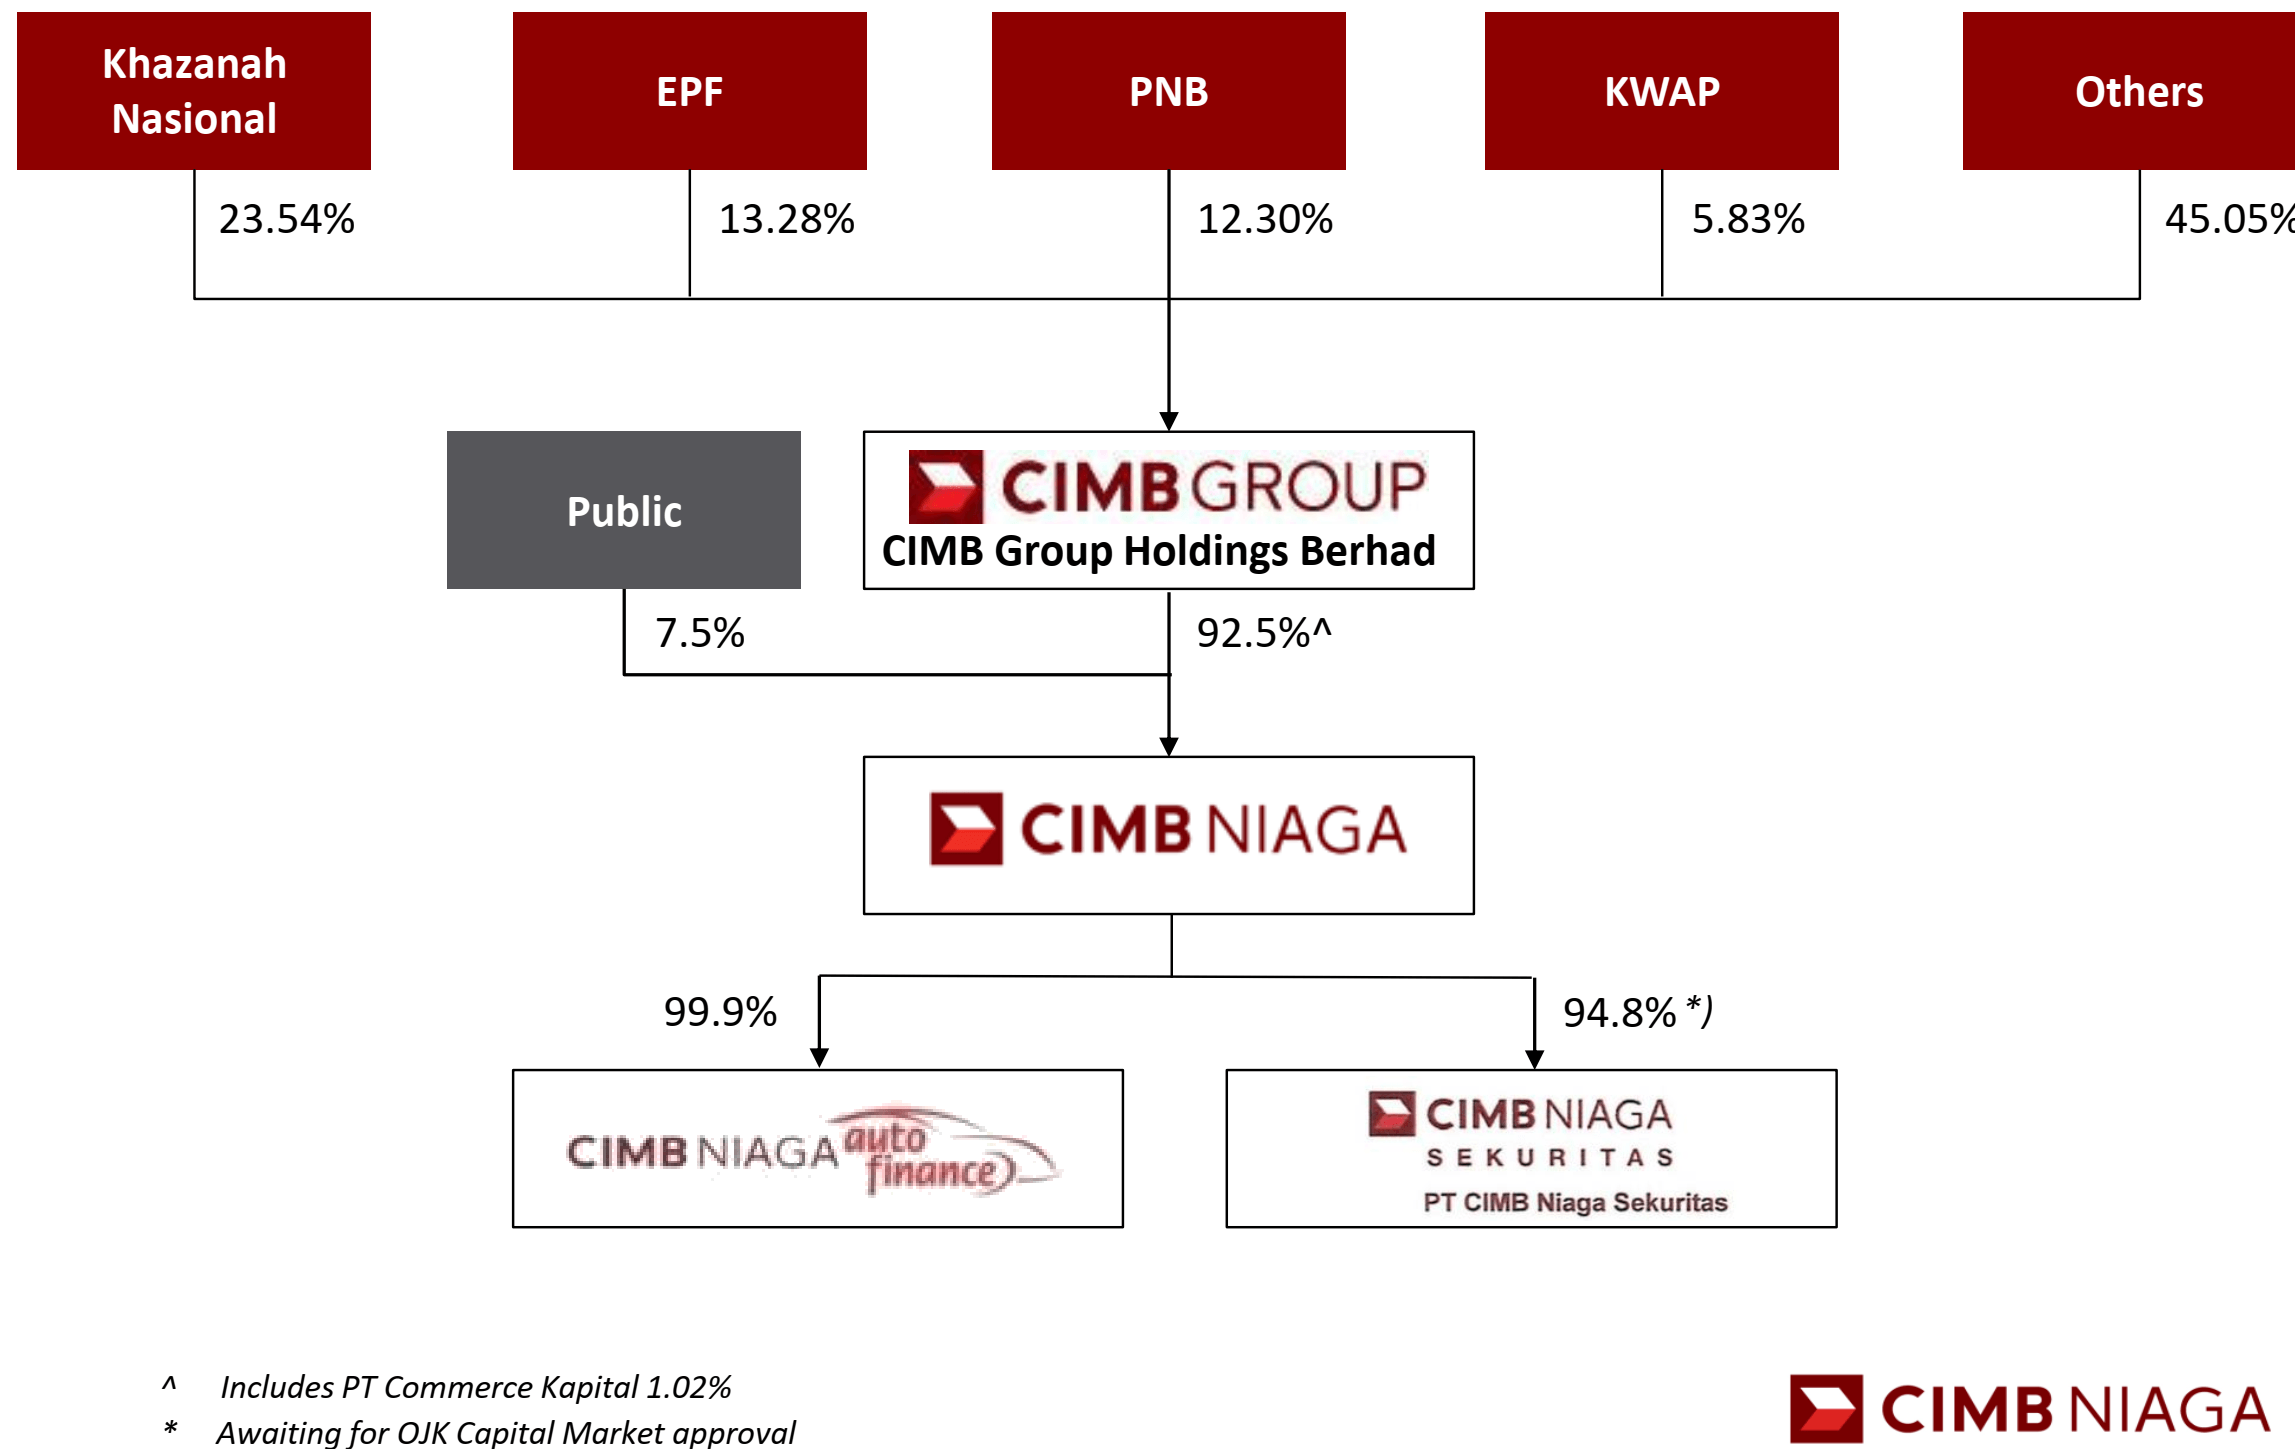 Bank Cimb Niaga Valuation Discount To Peers Is Unwarranted Otcmkts Ptnaf Seeking Alpha